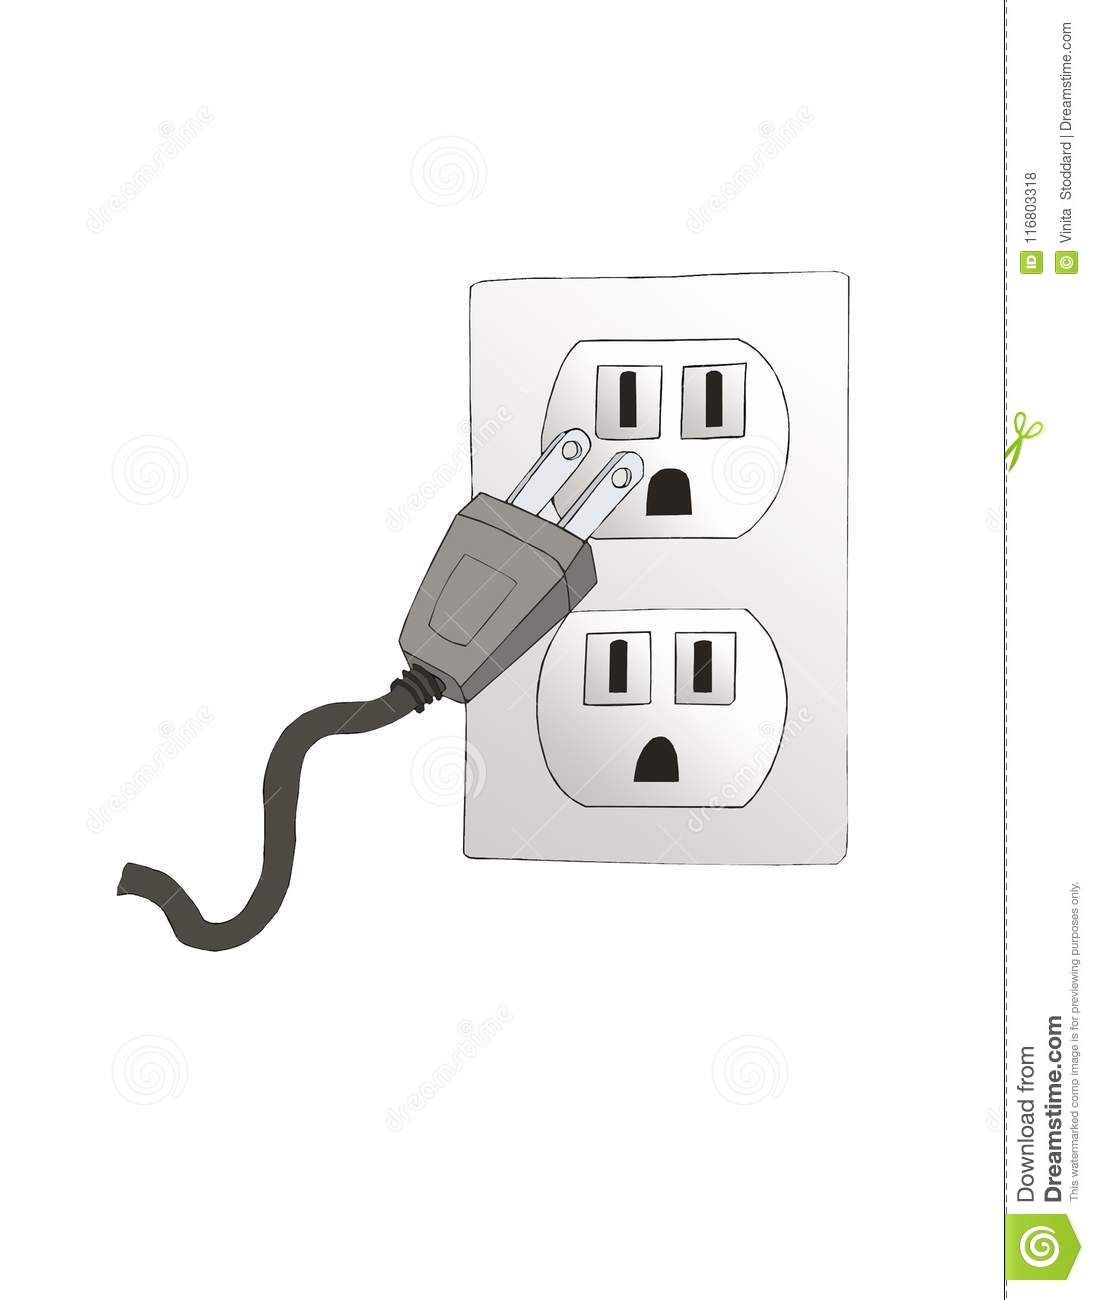 Electrical Outlet With Plug Ready To Plug In Stock Illustration